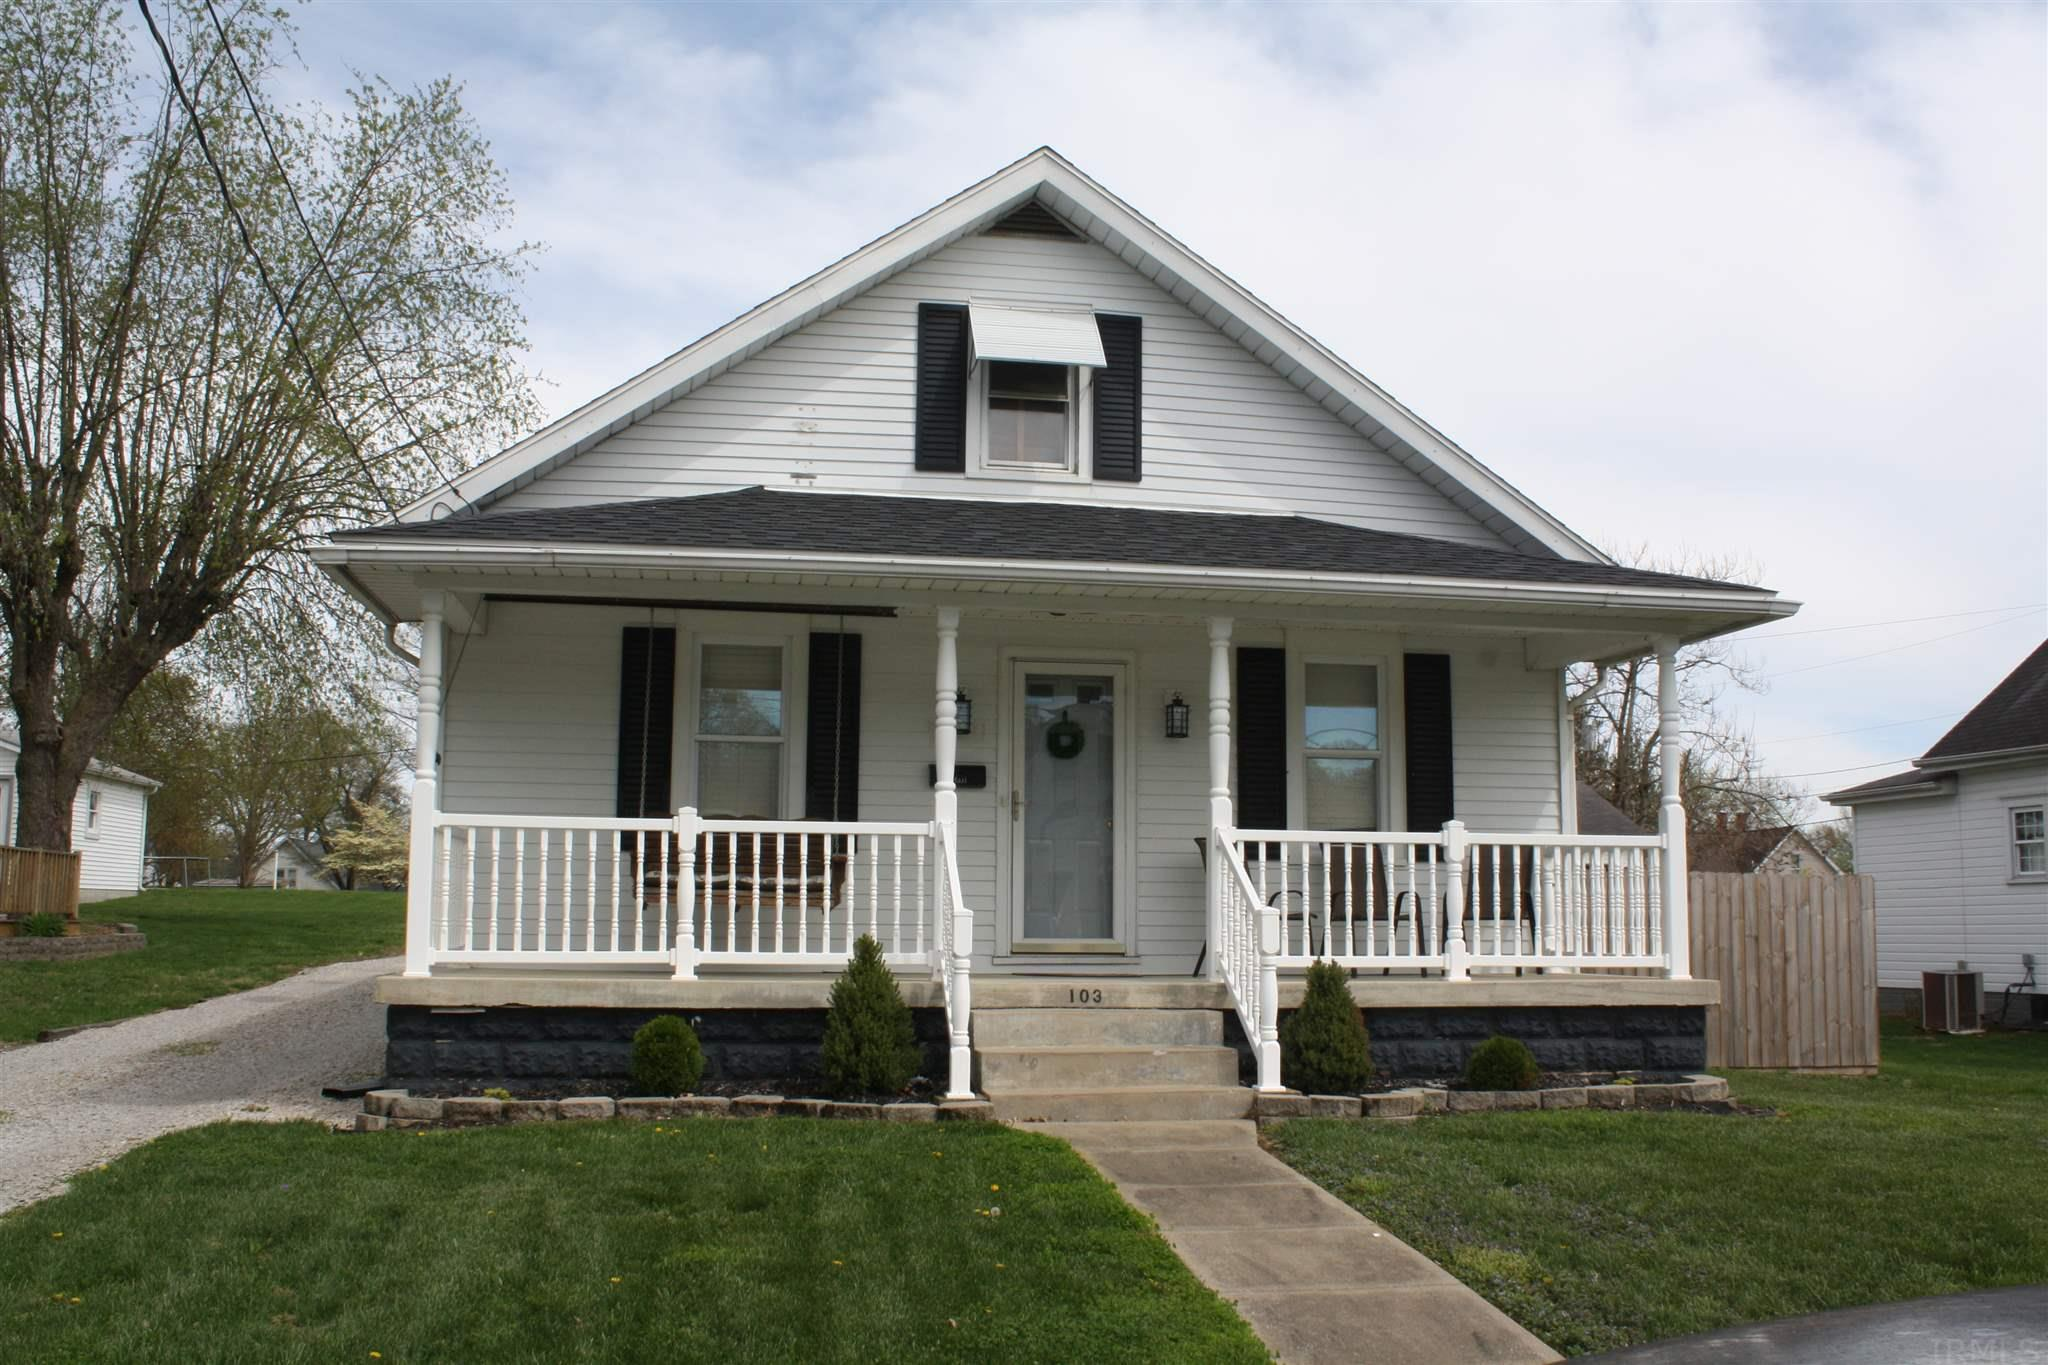 Check out this 3 bedroom one and a half bath within walking distance of historic 4th Street in Huntingburg. It has been almost completely remodeled inside and has a fully fenced in backyard and a detached 2 car garage!